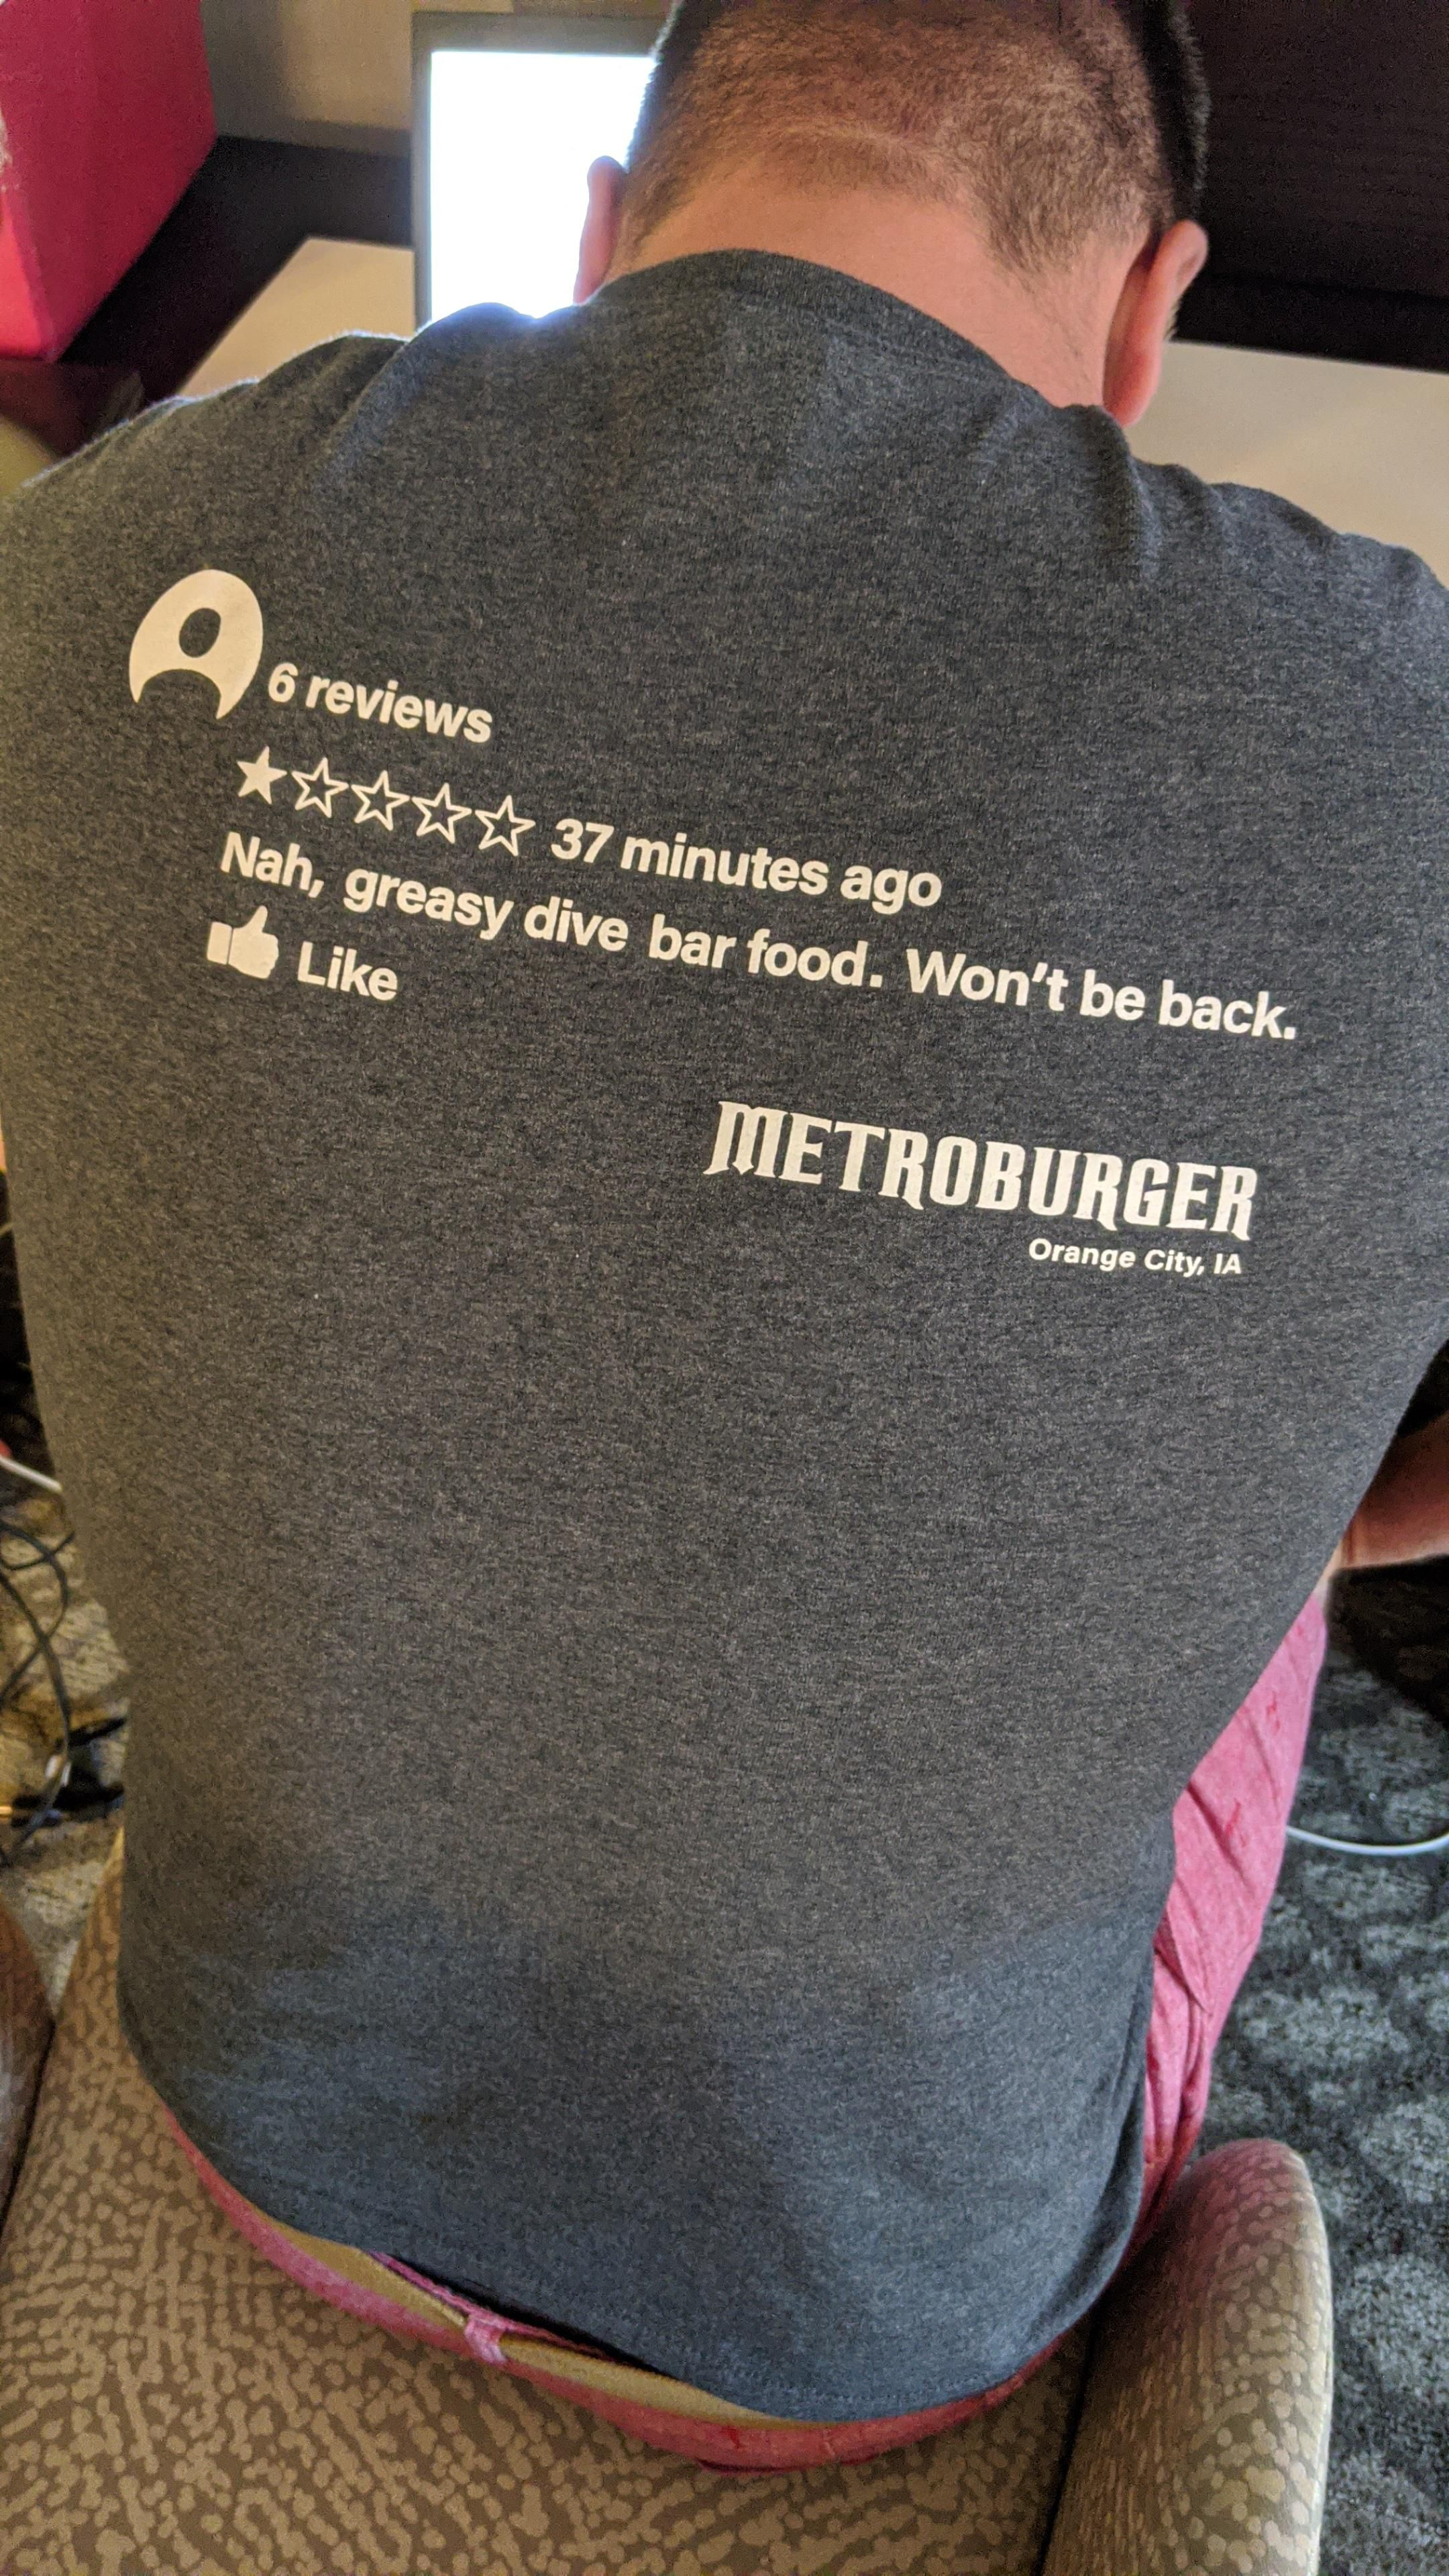 My friends brother owns a burger joint and has one bad review so he decided to make a t-shirt out of it.